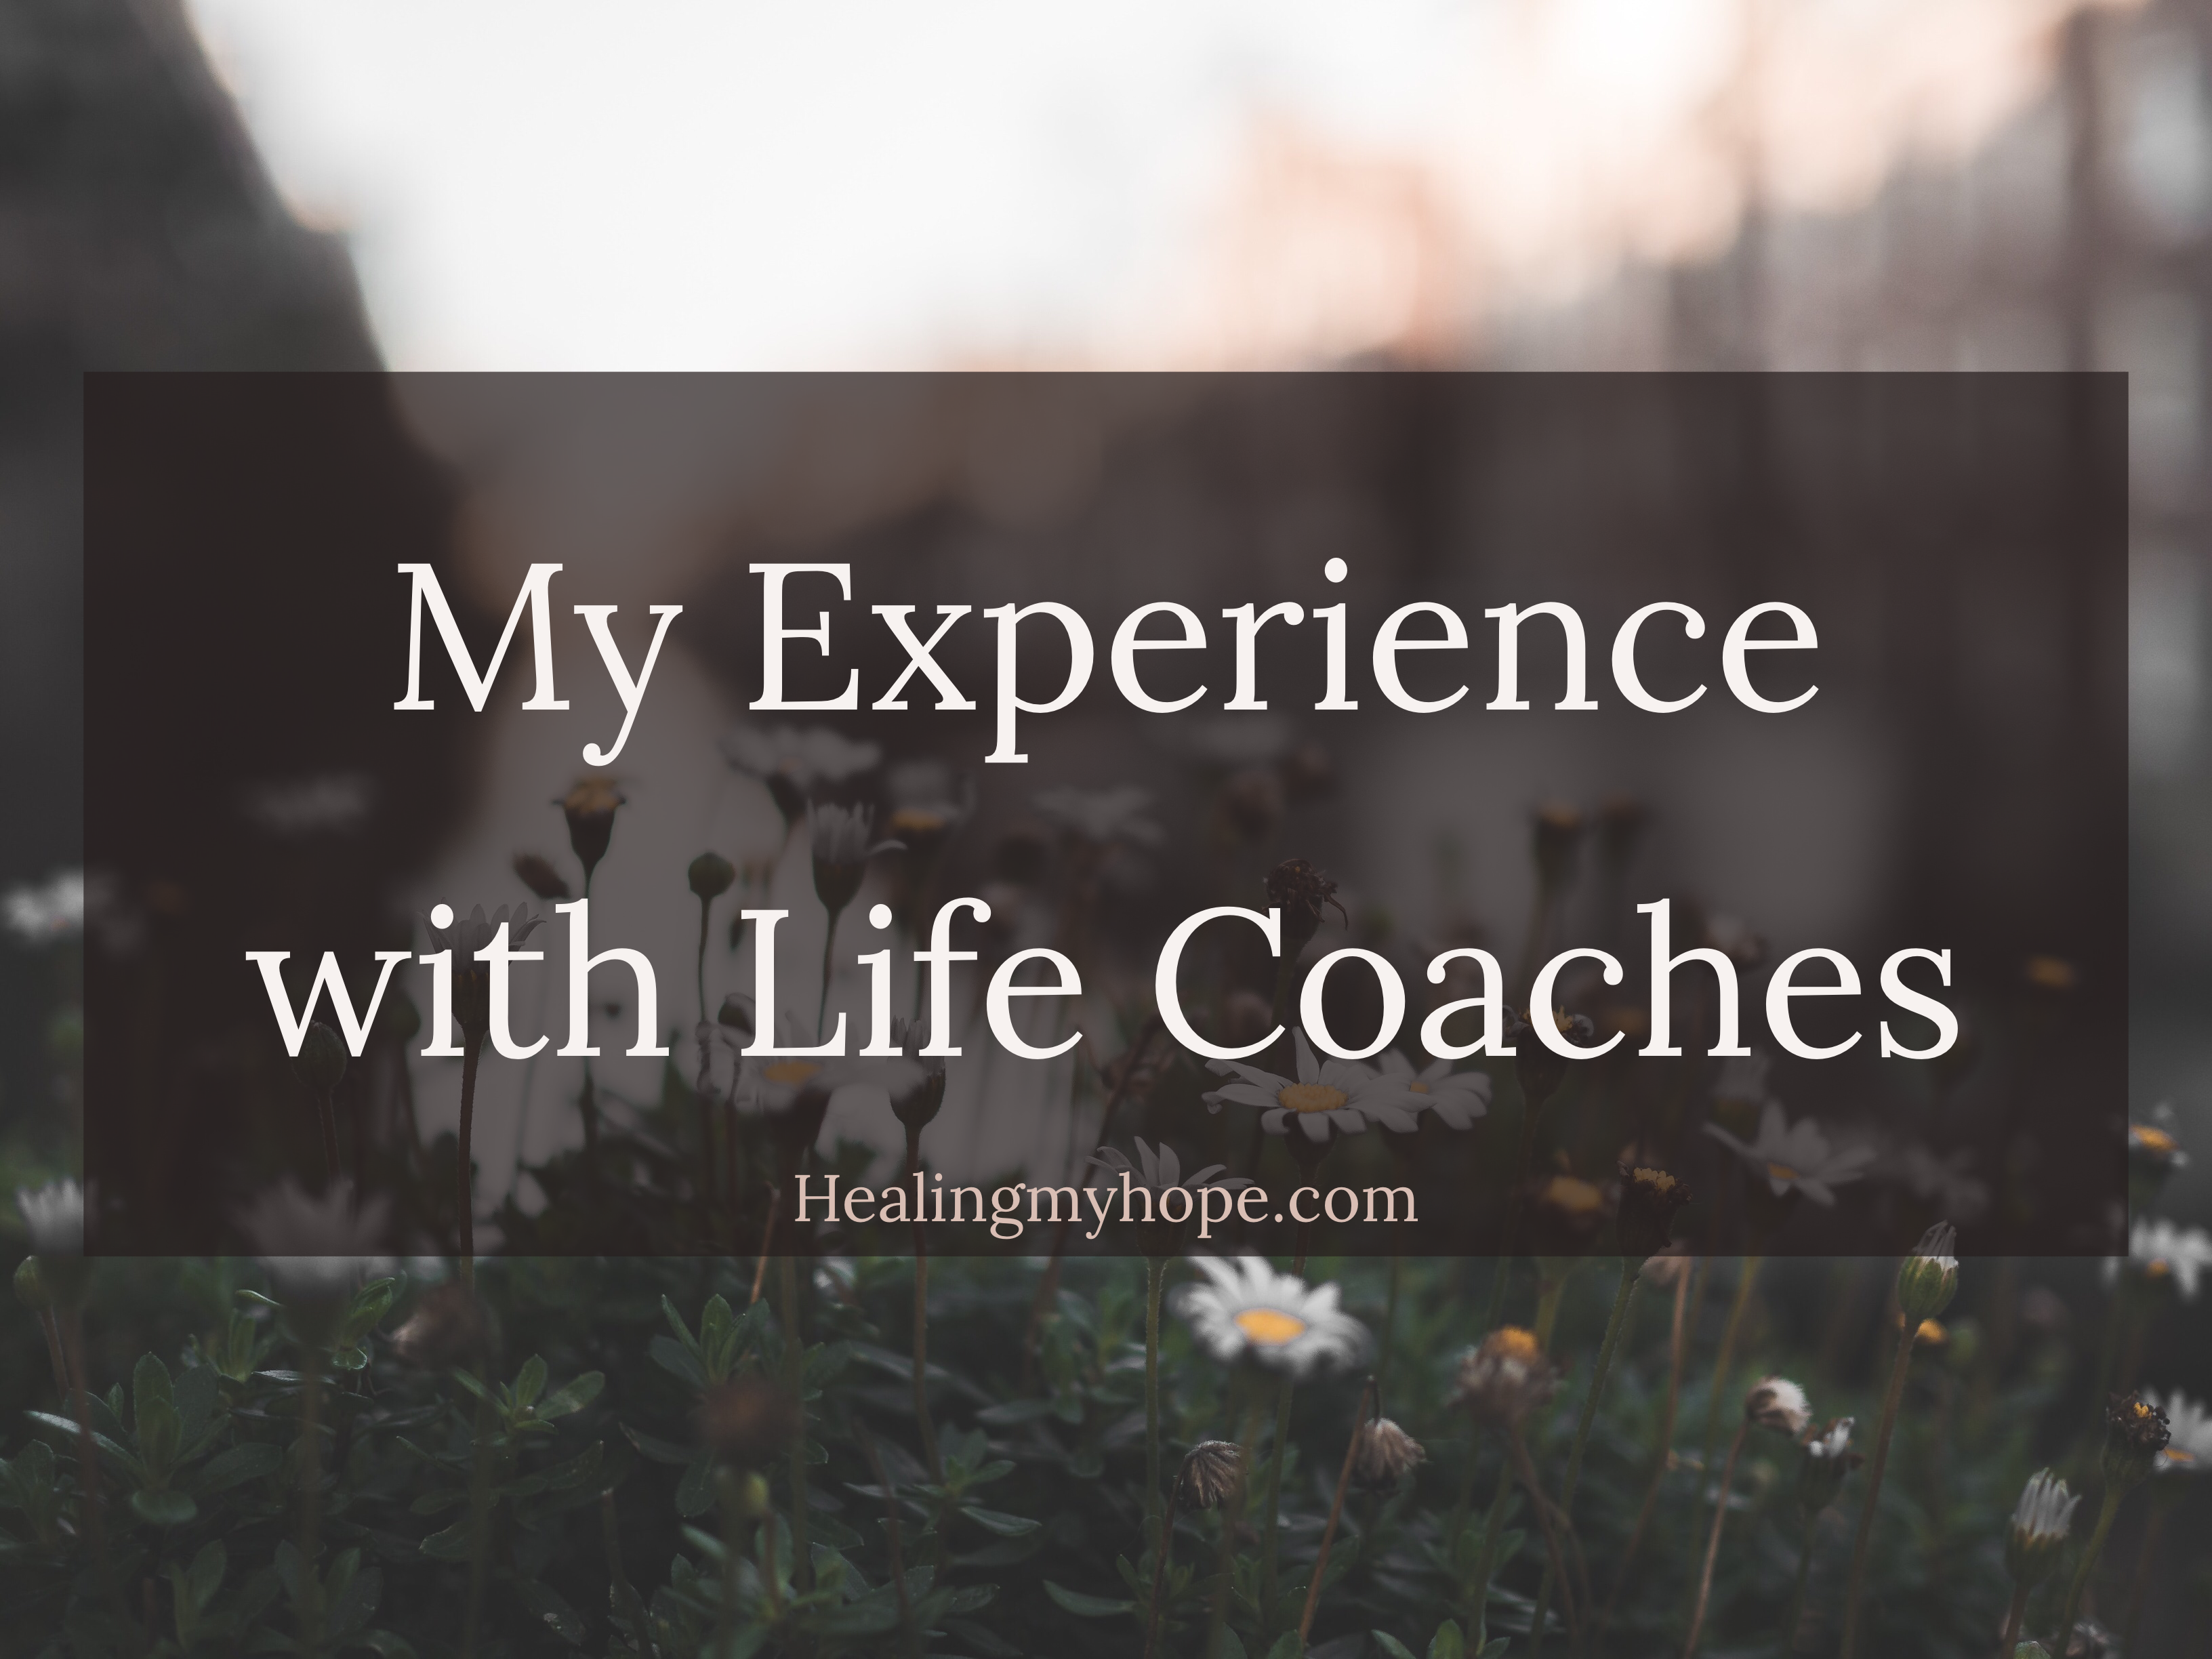 My Experience with Life Coaches